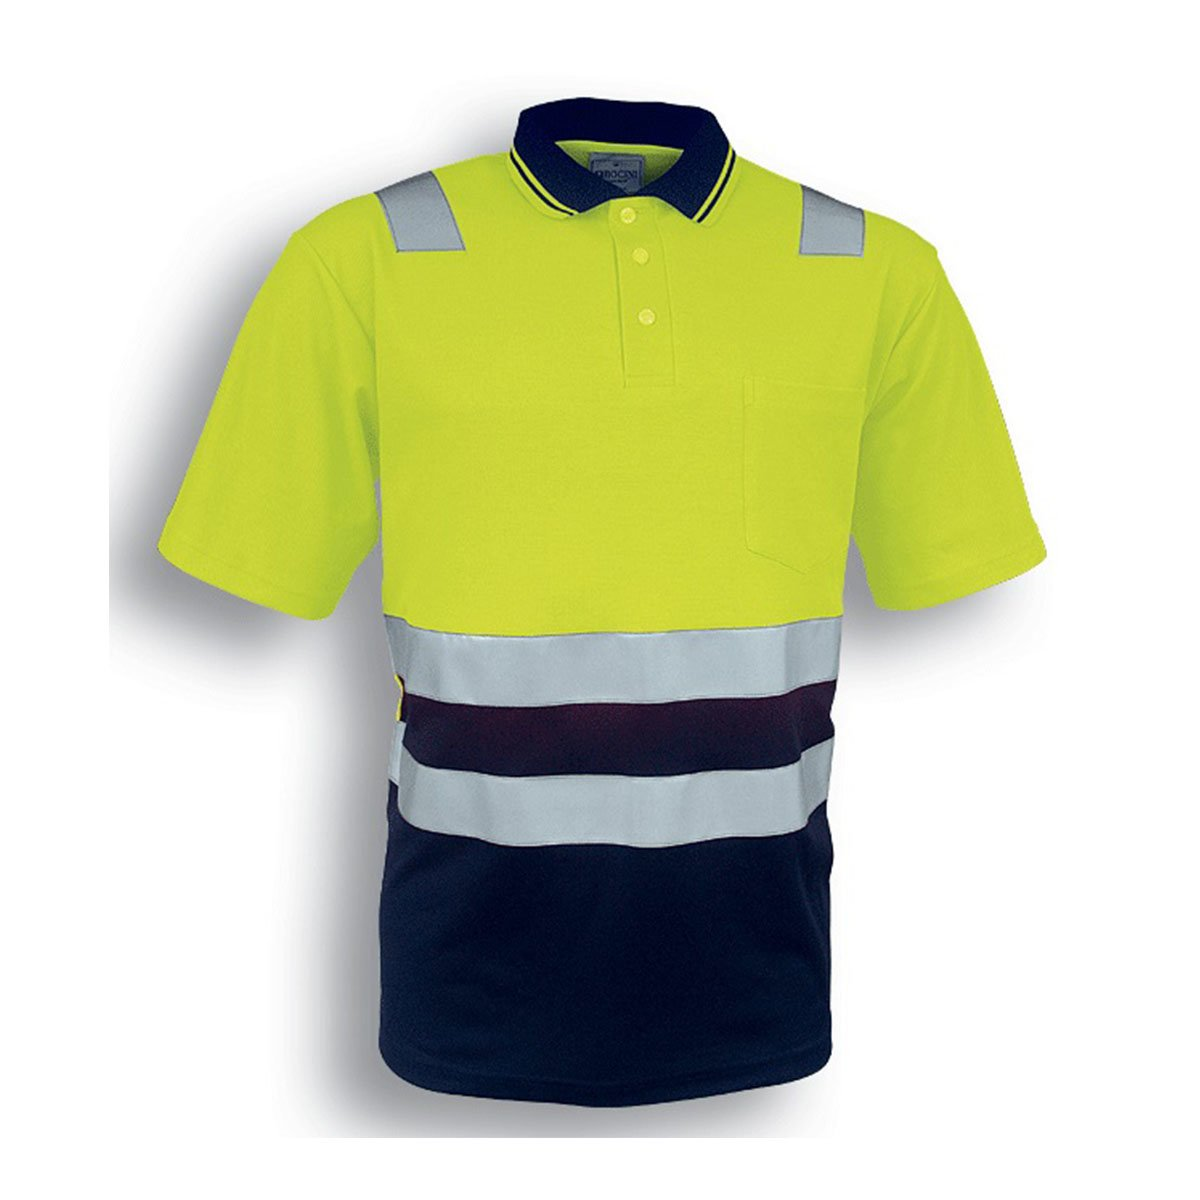 HI-VIS POLYFACE/COTTON BACK POLO WITH TAPE – S/S-Lime / Navy